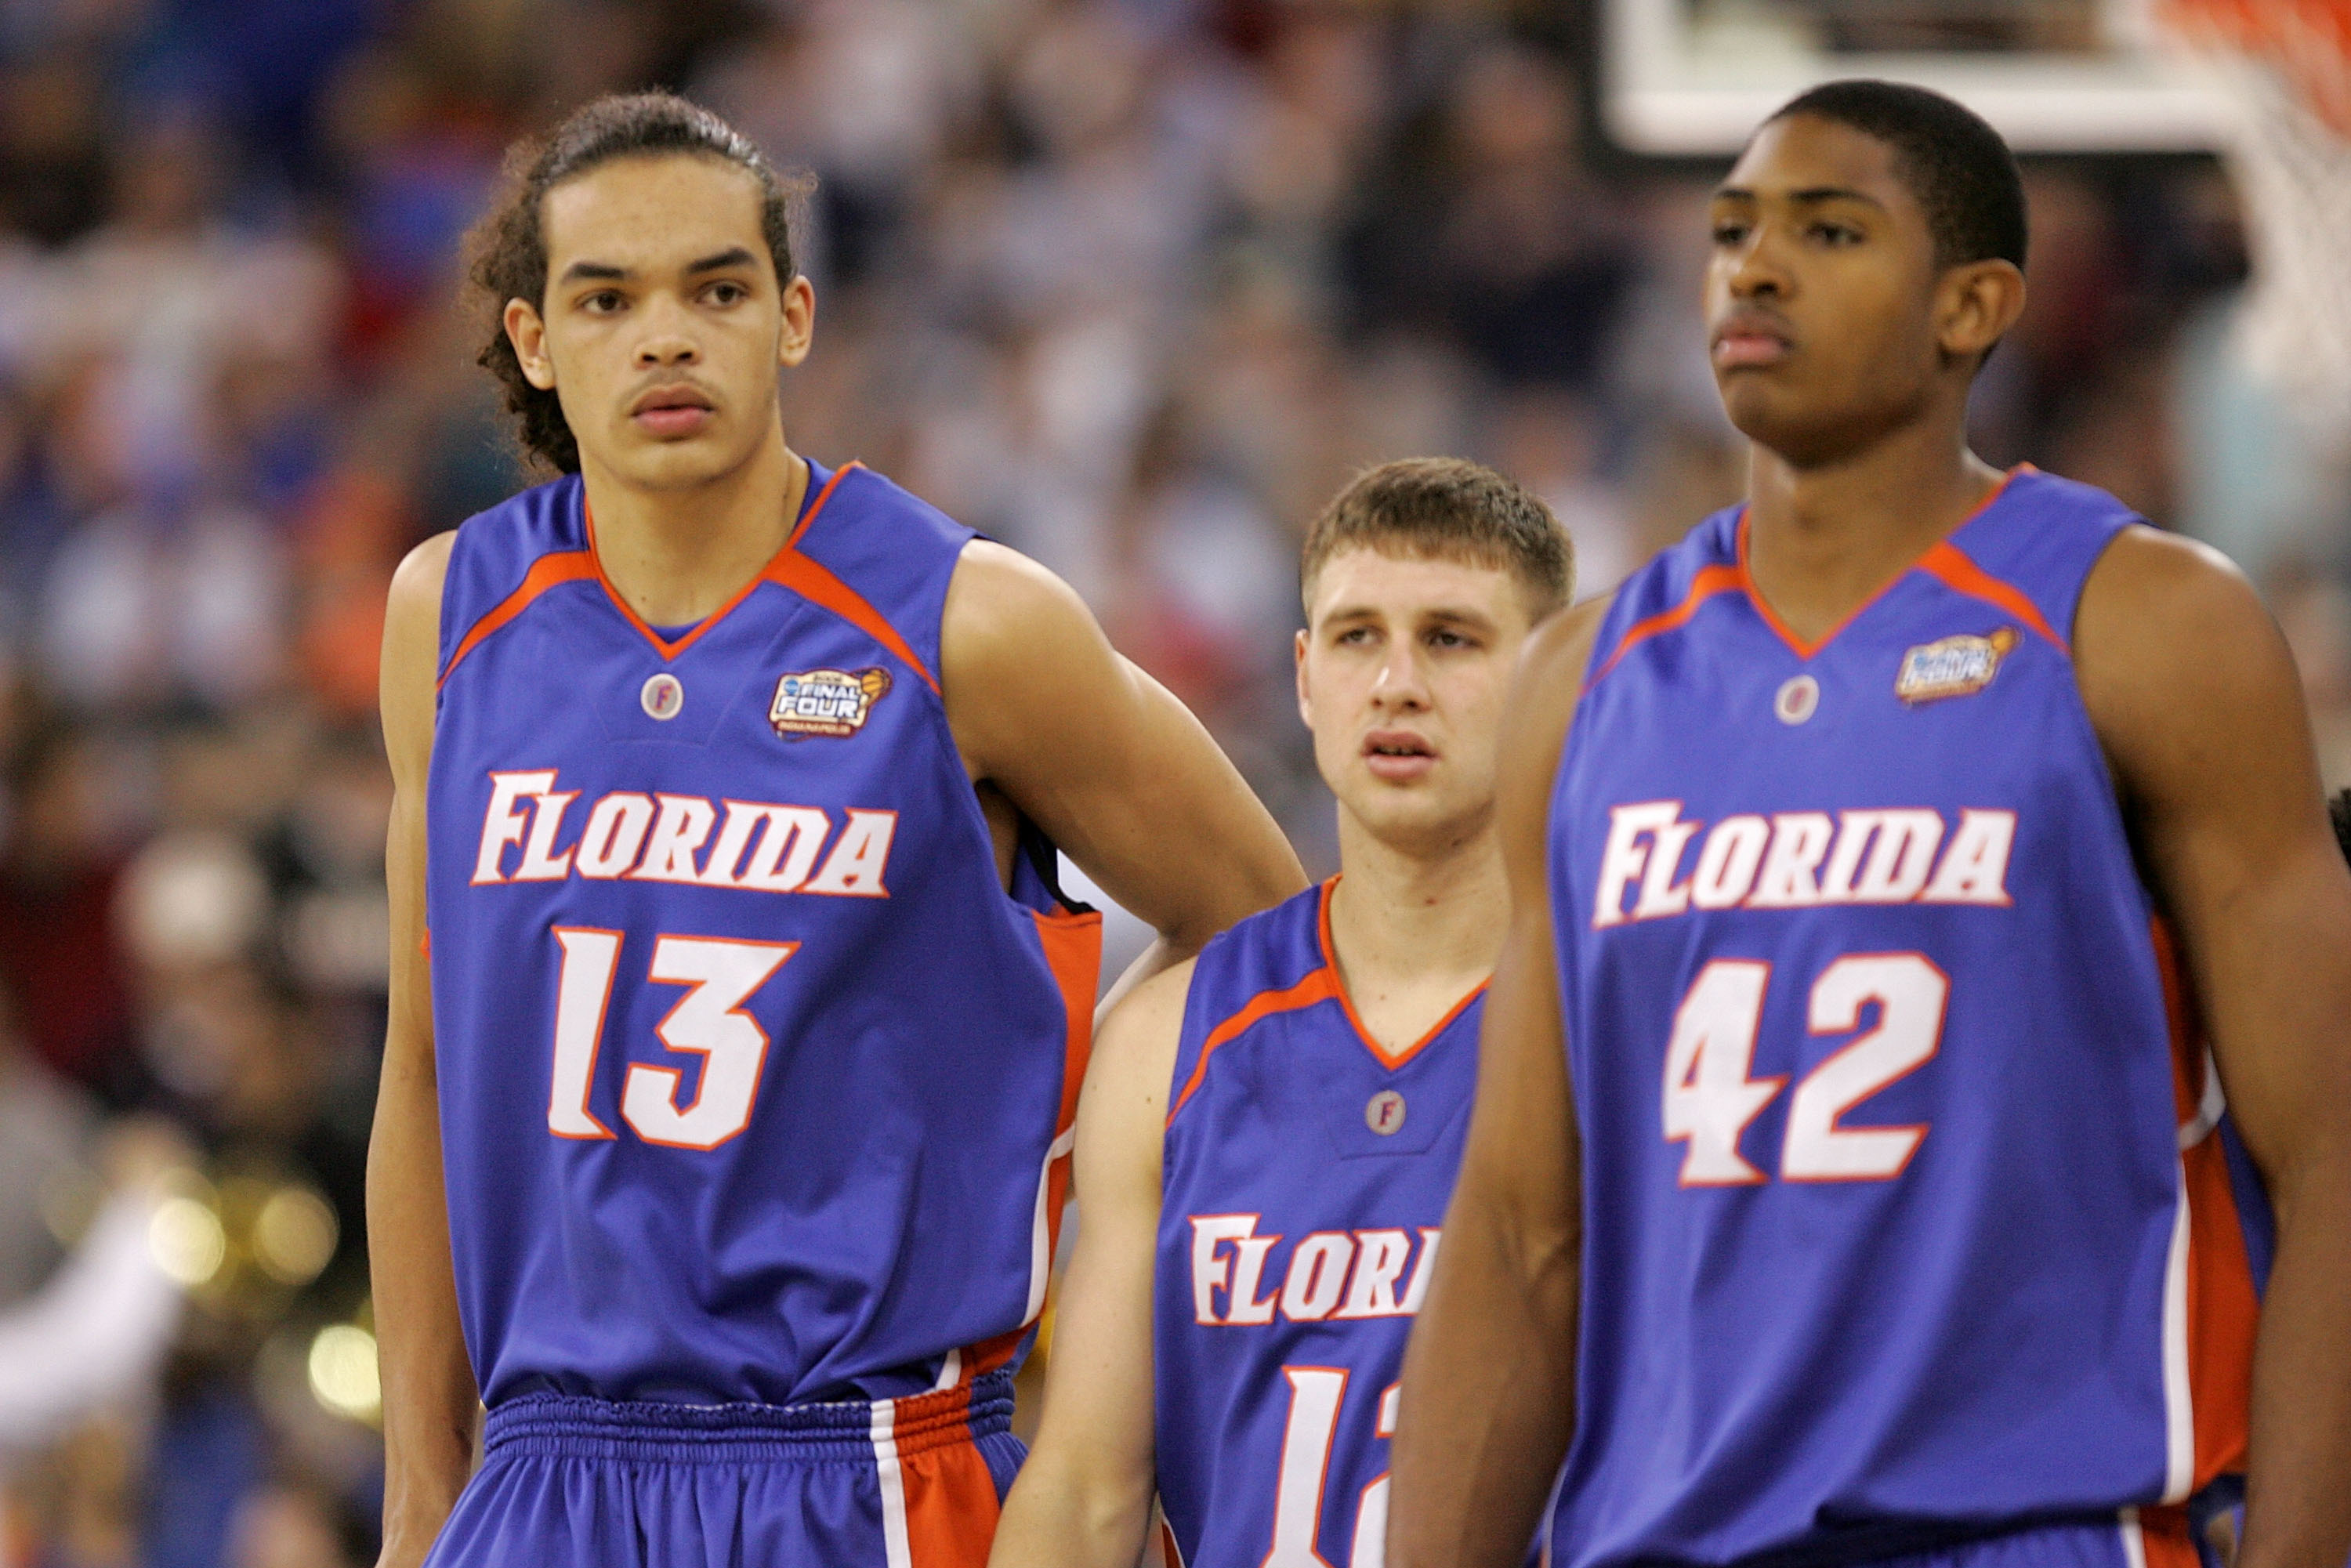 reputable site 1270a 7f5c0 Florida Basketball: Ranking the Gators' All-Time Best NBA ...